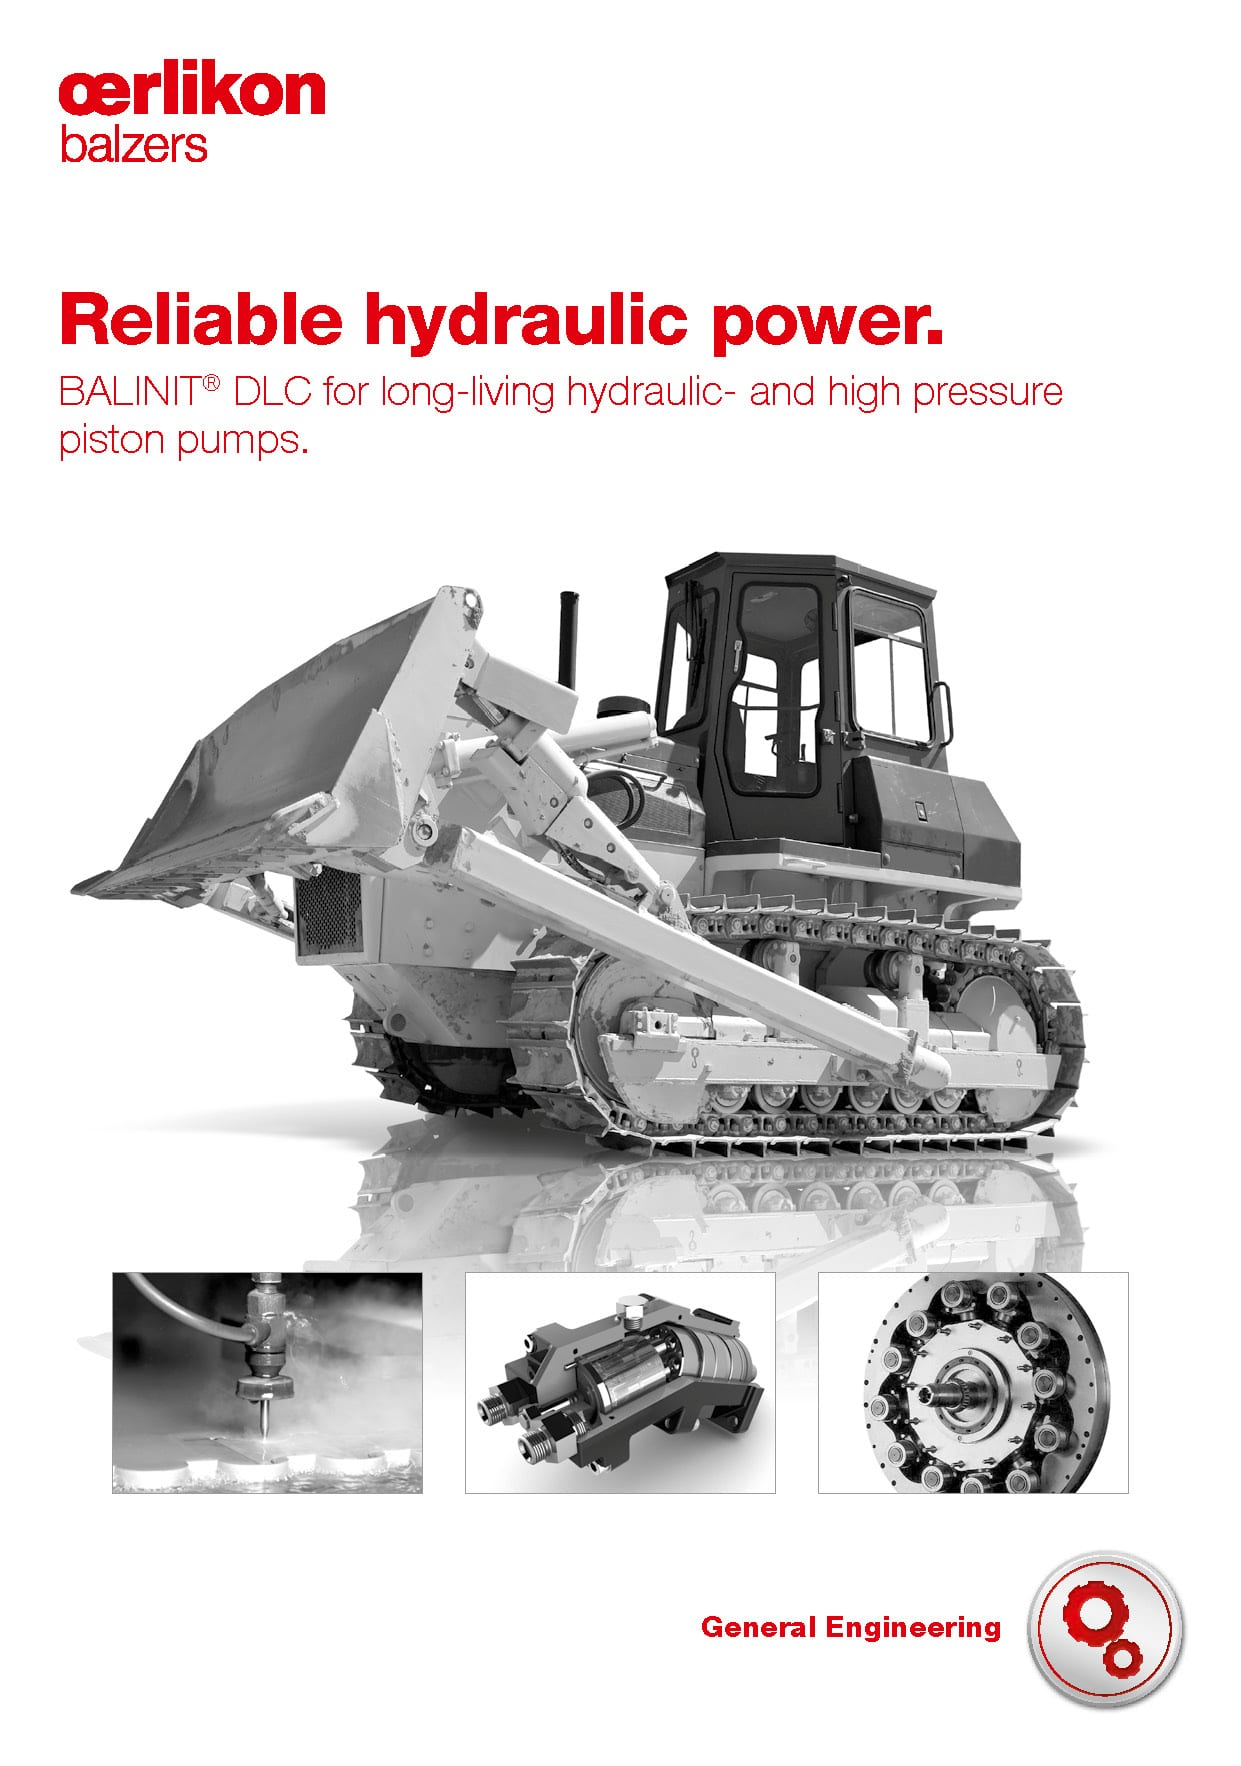 Reliable hydraulic power